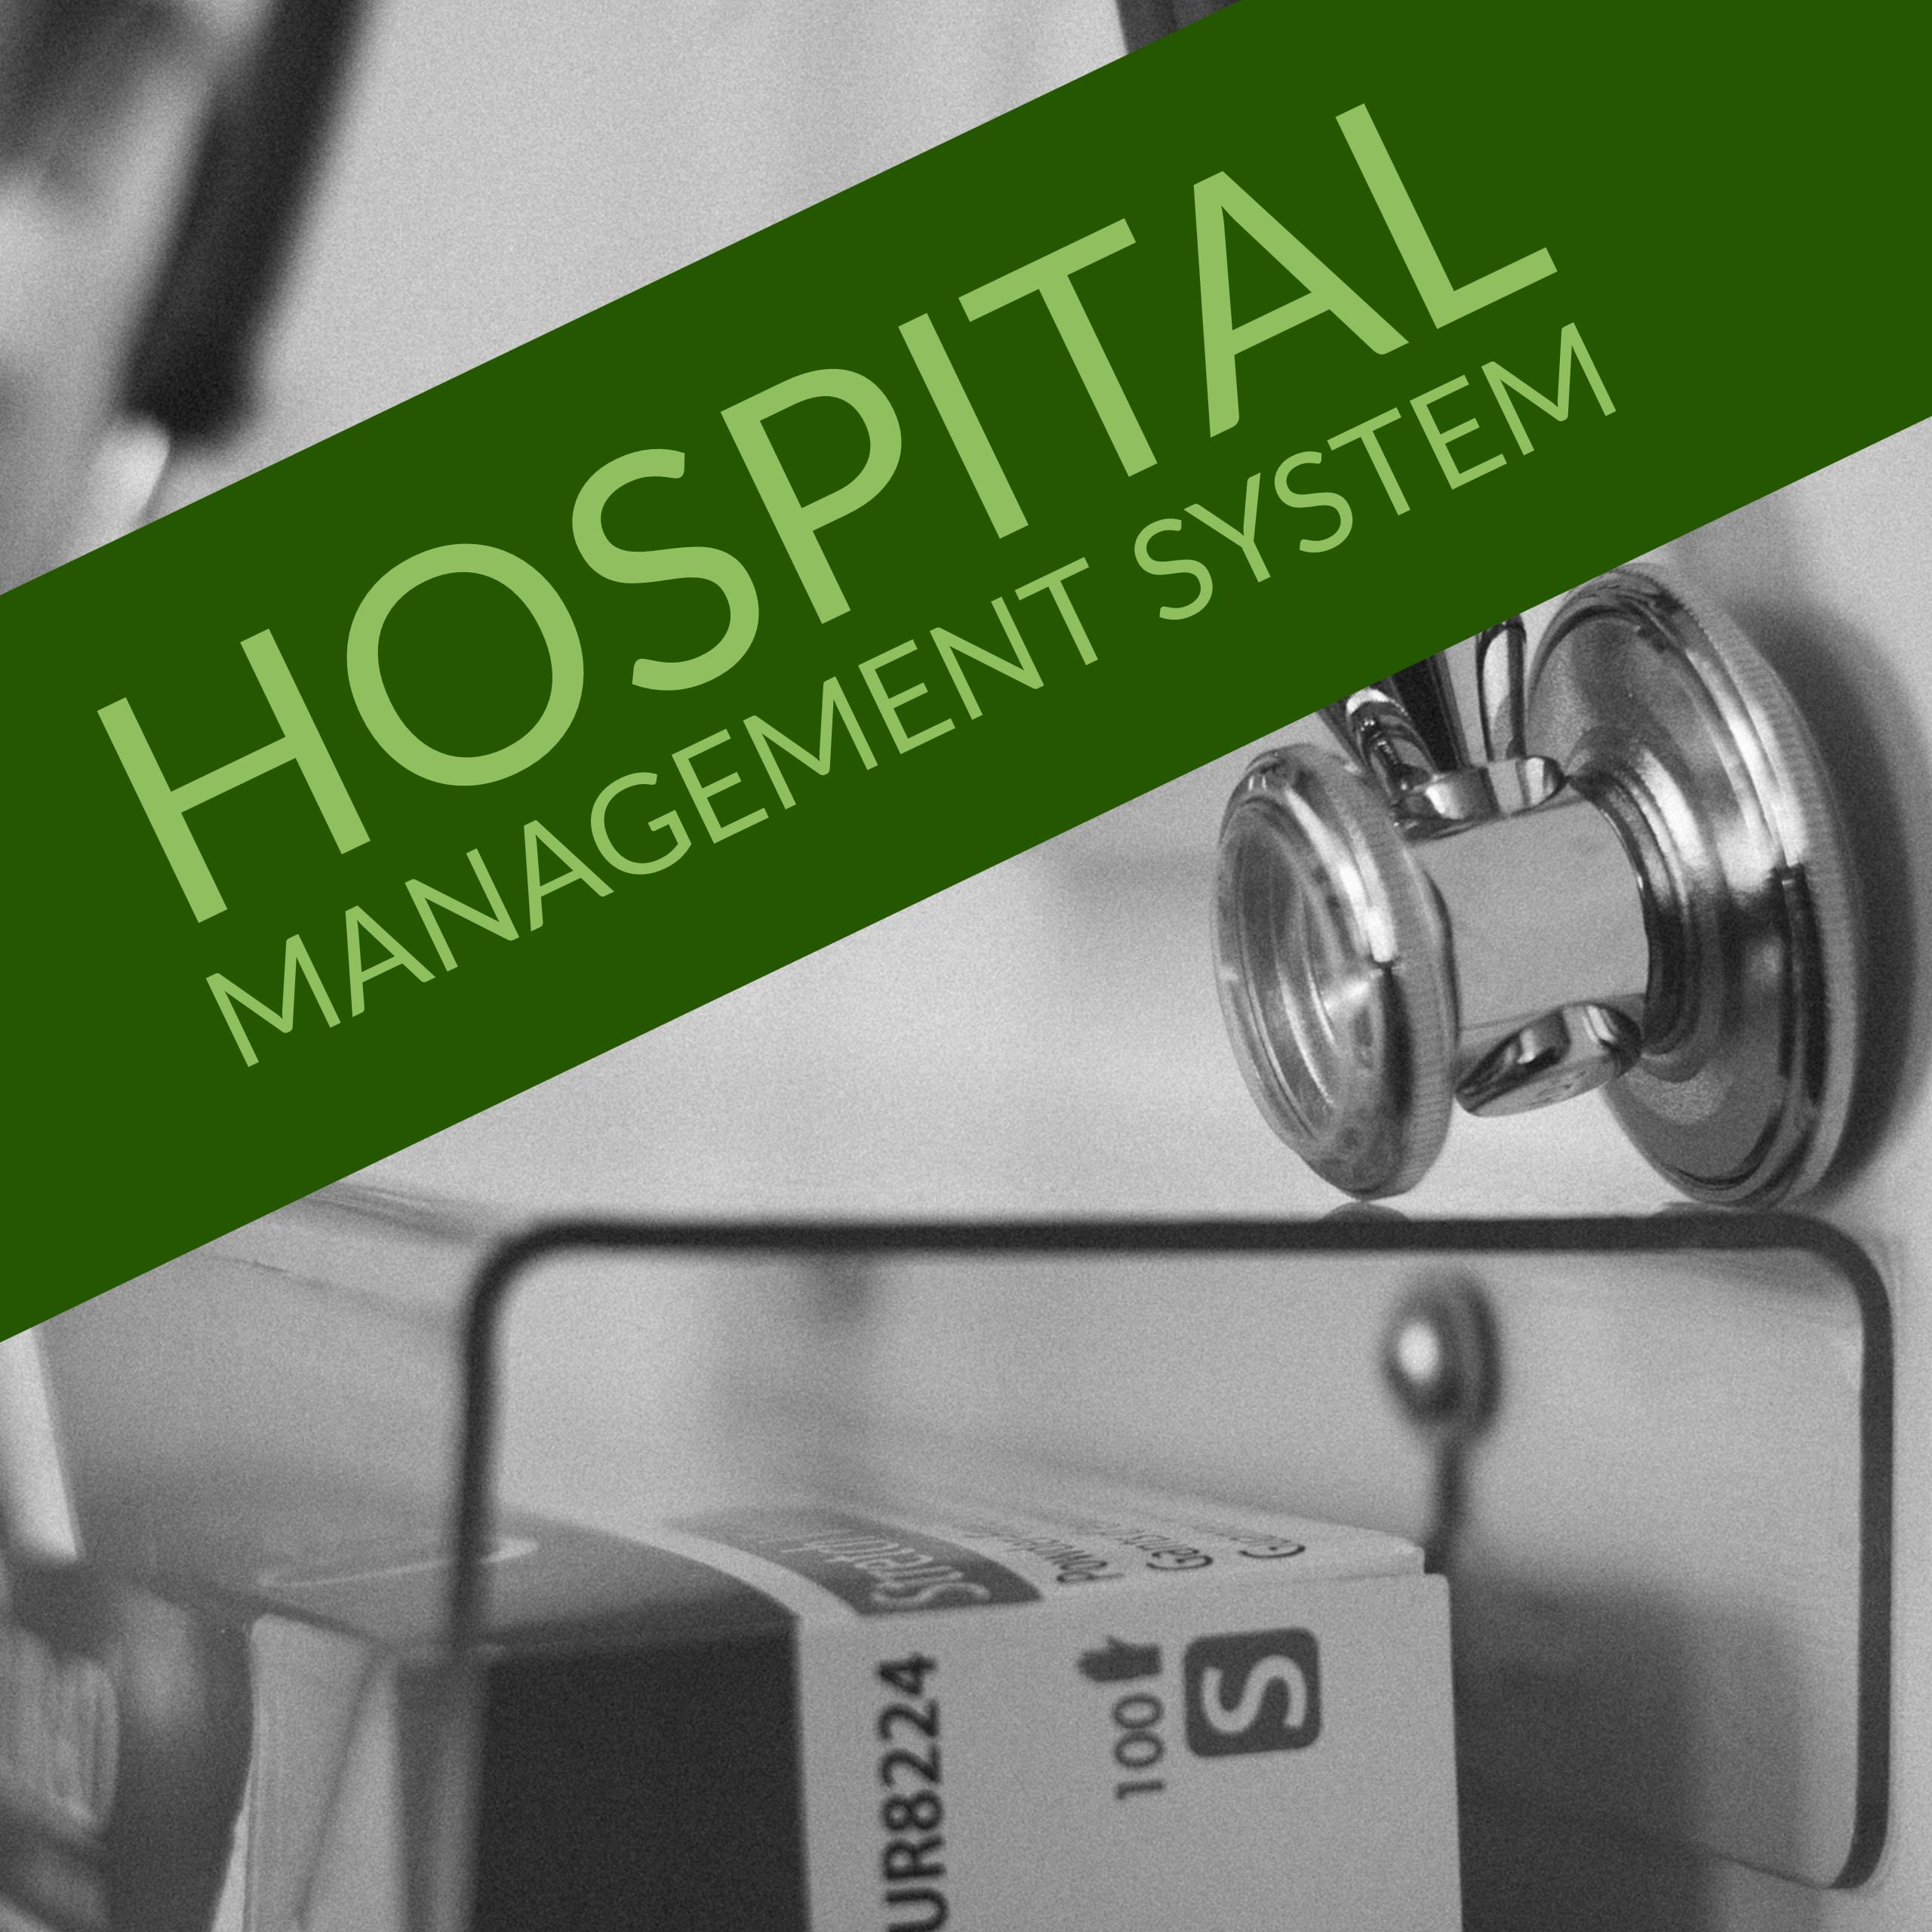 Hospital Management system image